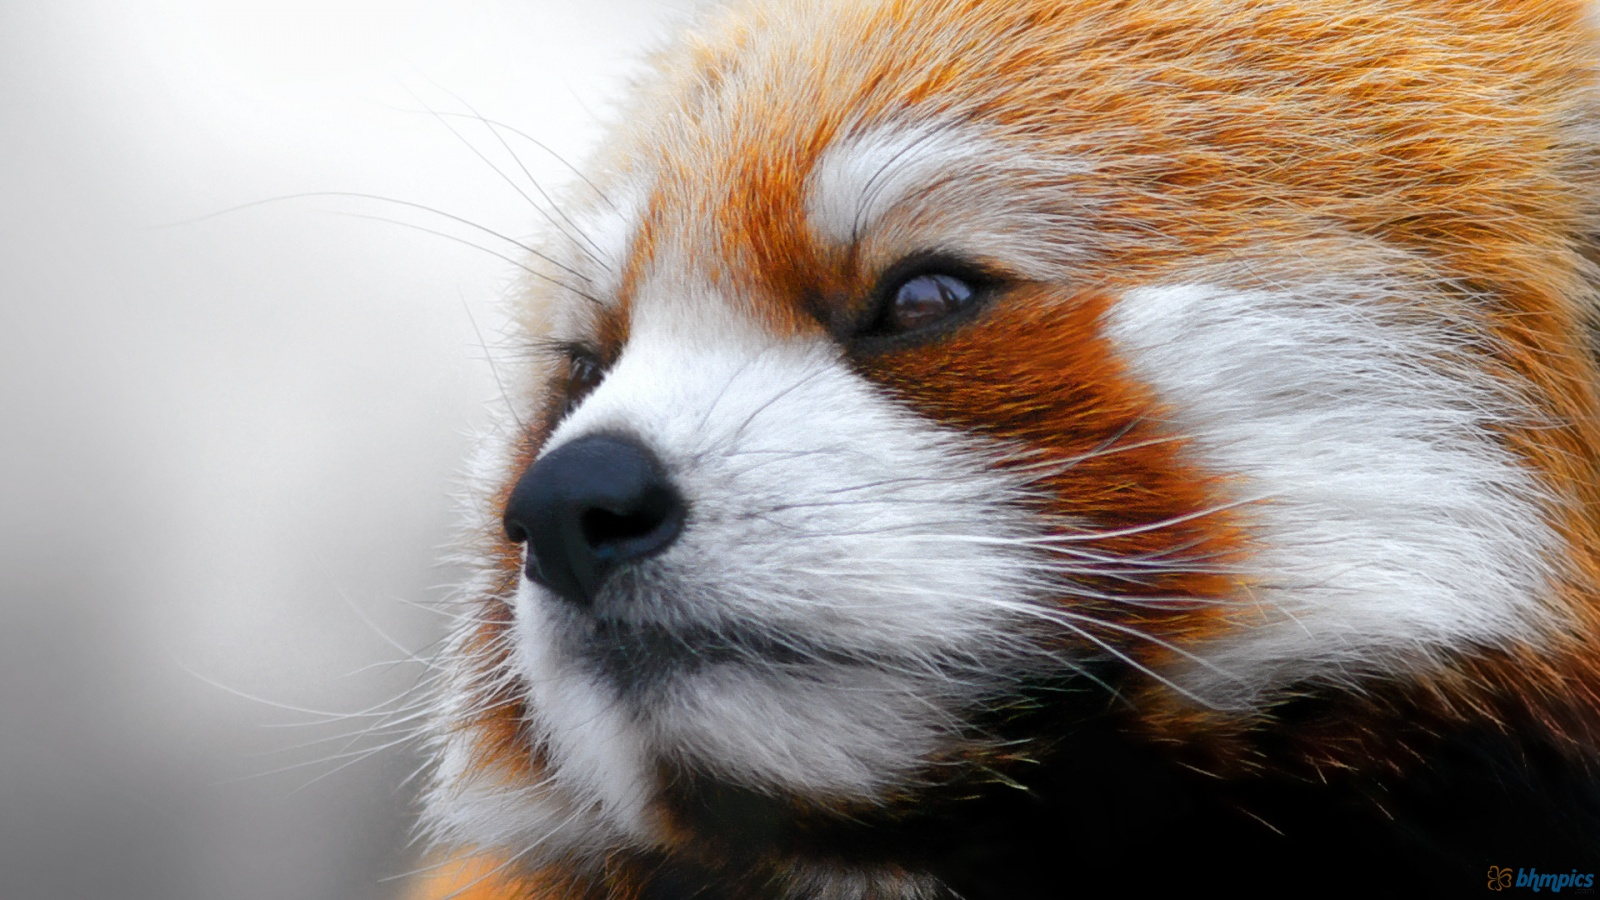 I'm not a red panda.